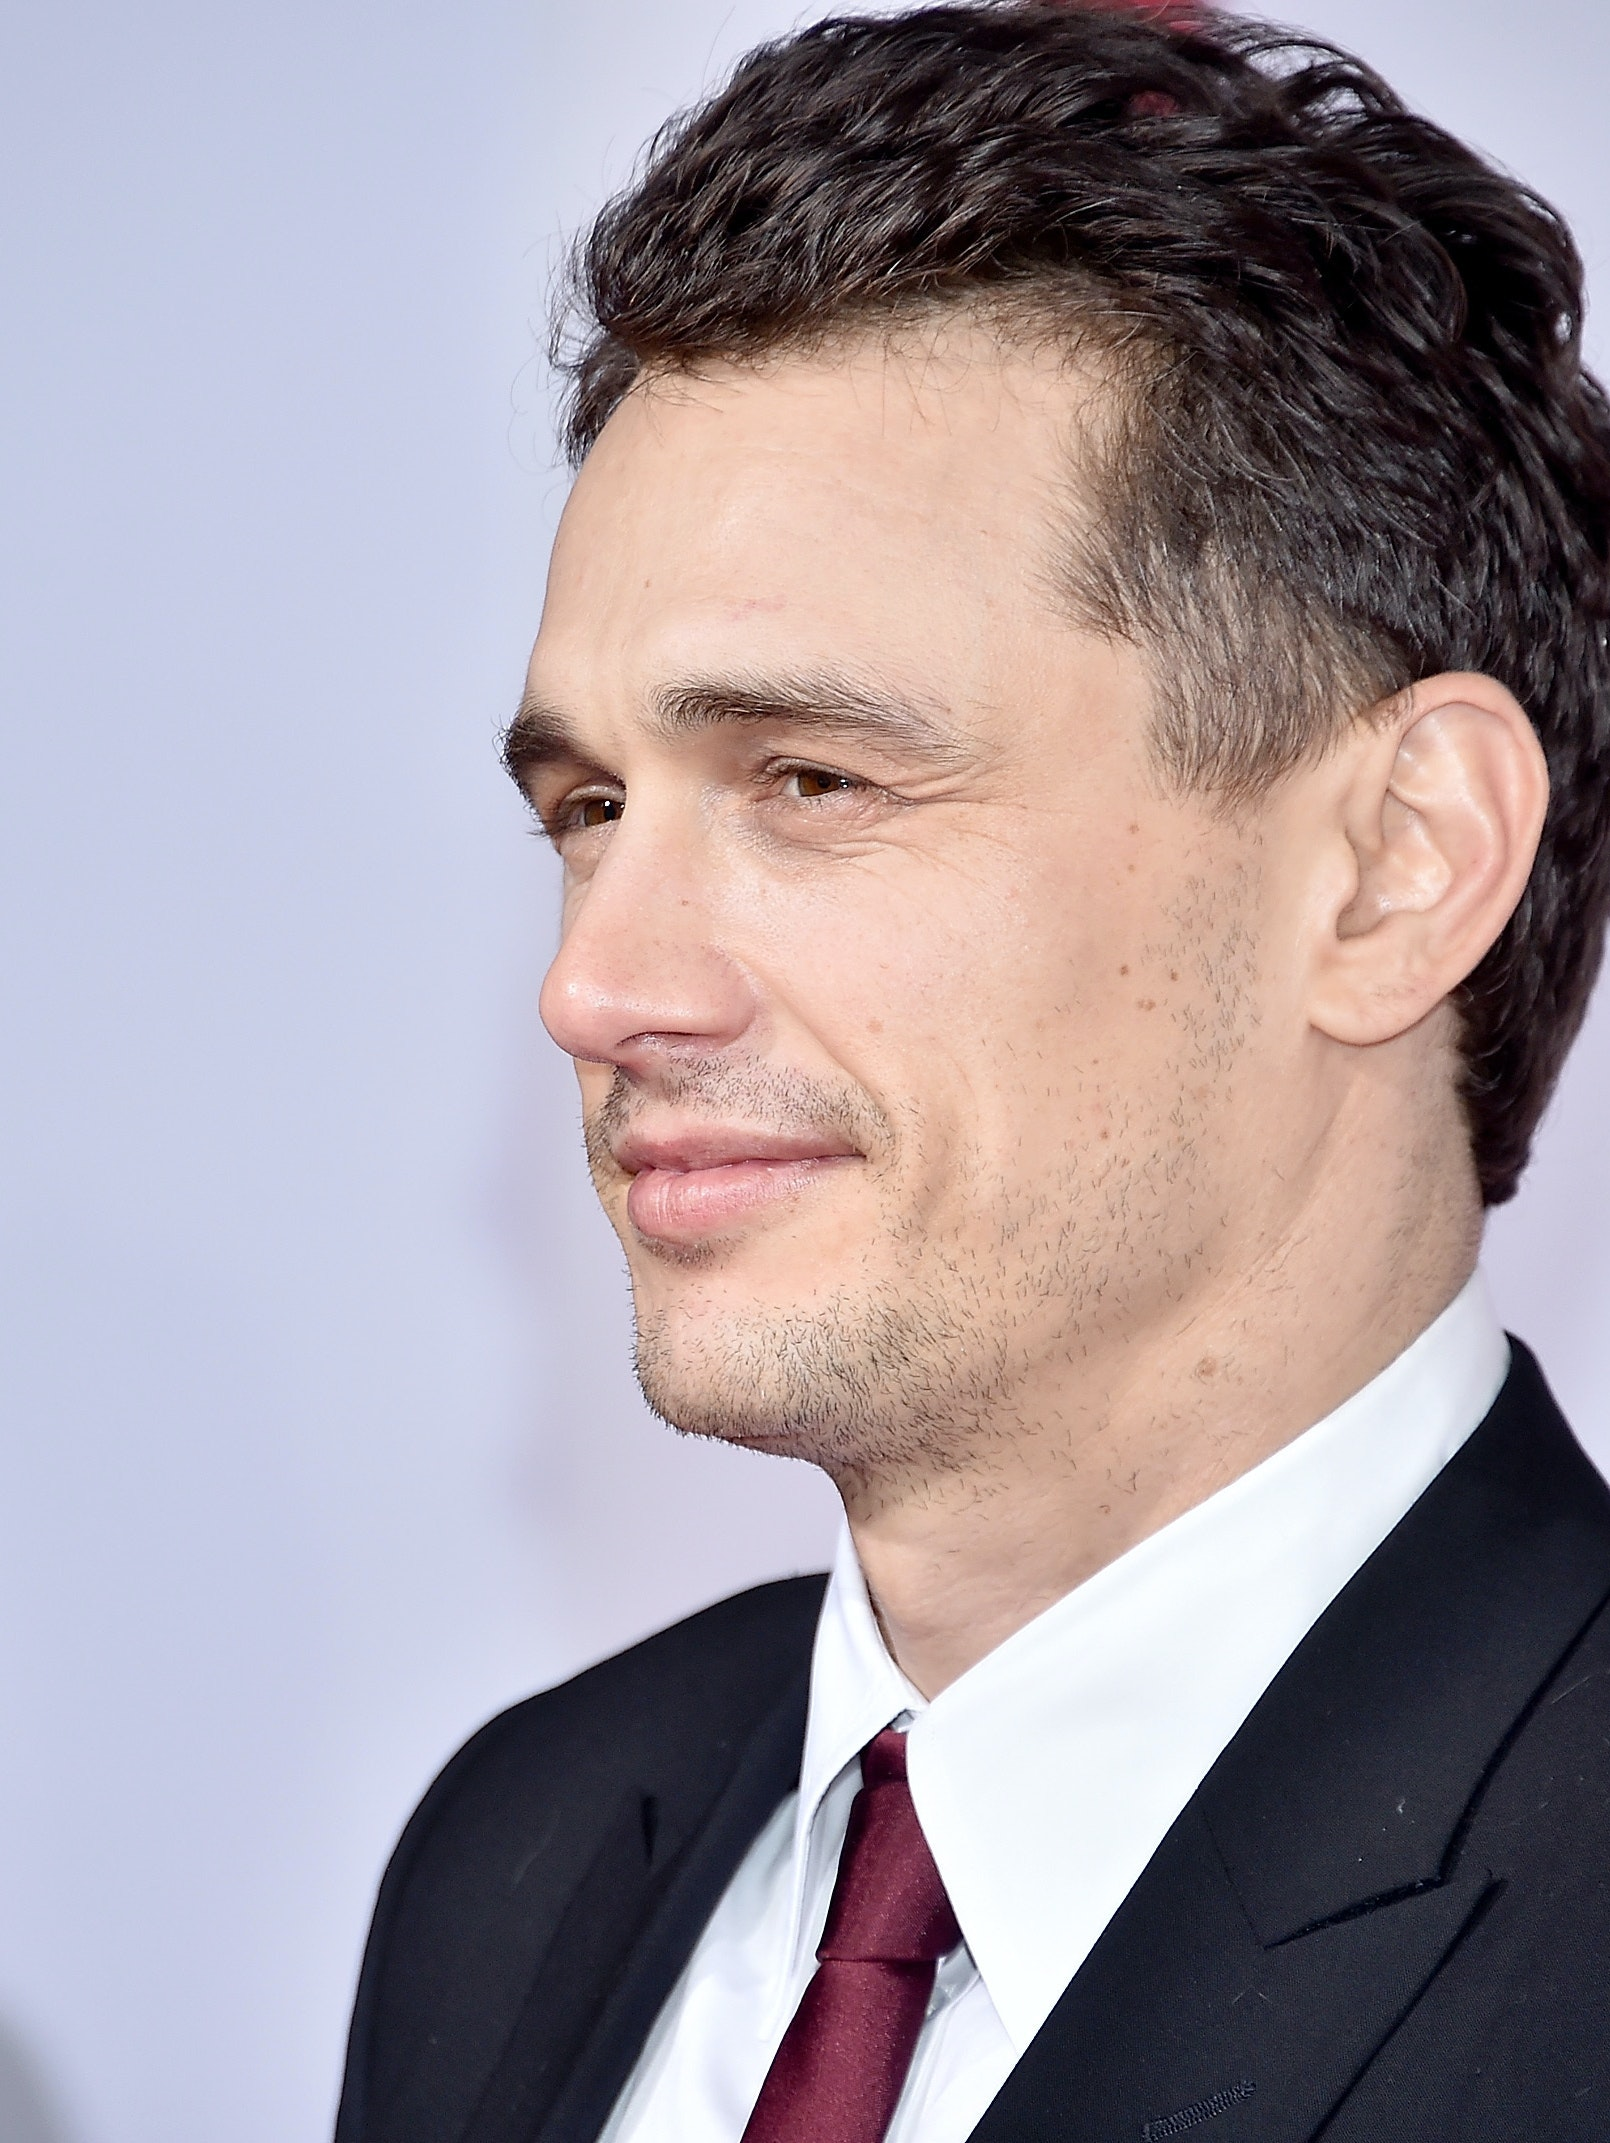 WESTWOOD, CA - DECEMBER 17:  Actor James Franco attends the premiere of 20th Century Fox's 'Why Him?' at Regency Bruin Theater on December 17, 2016 in Westwood, California.  (Photo by Mike Windle/Getty Images)